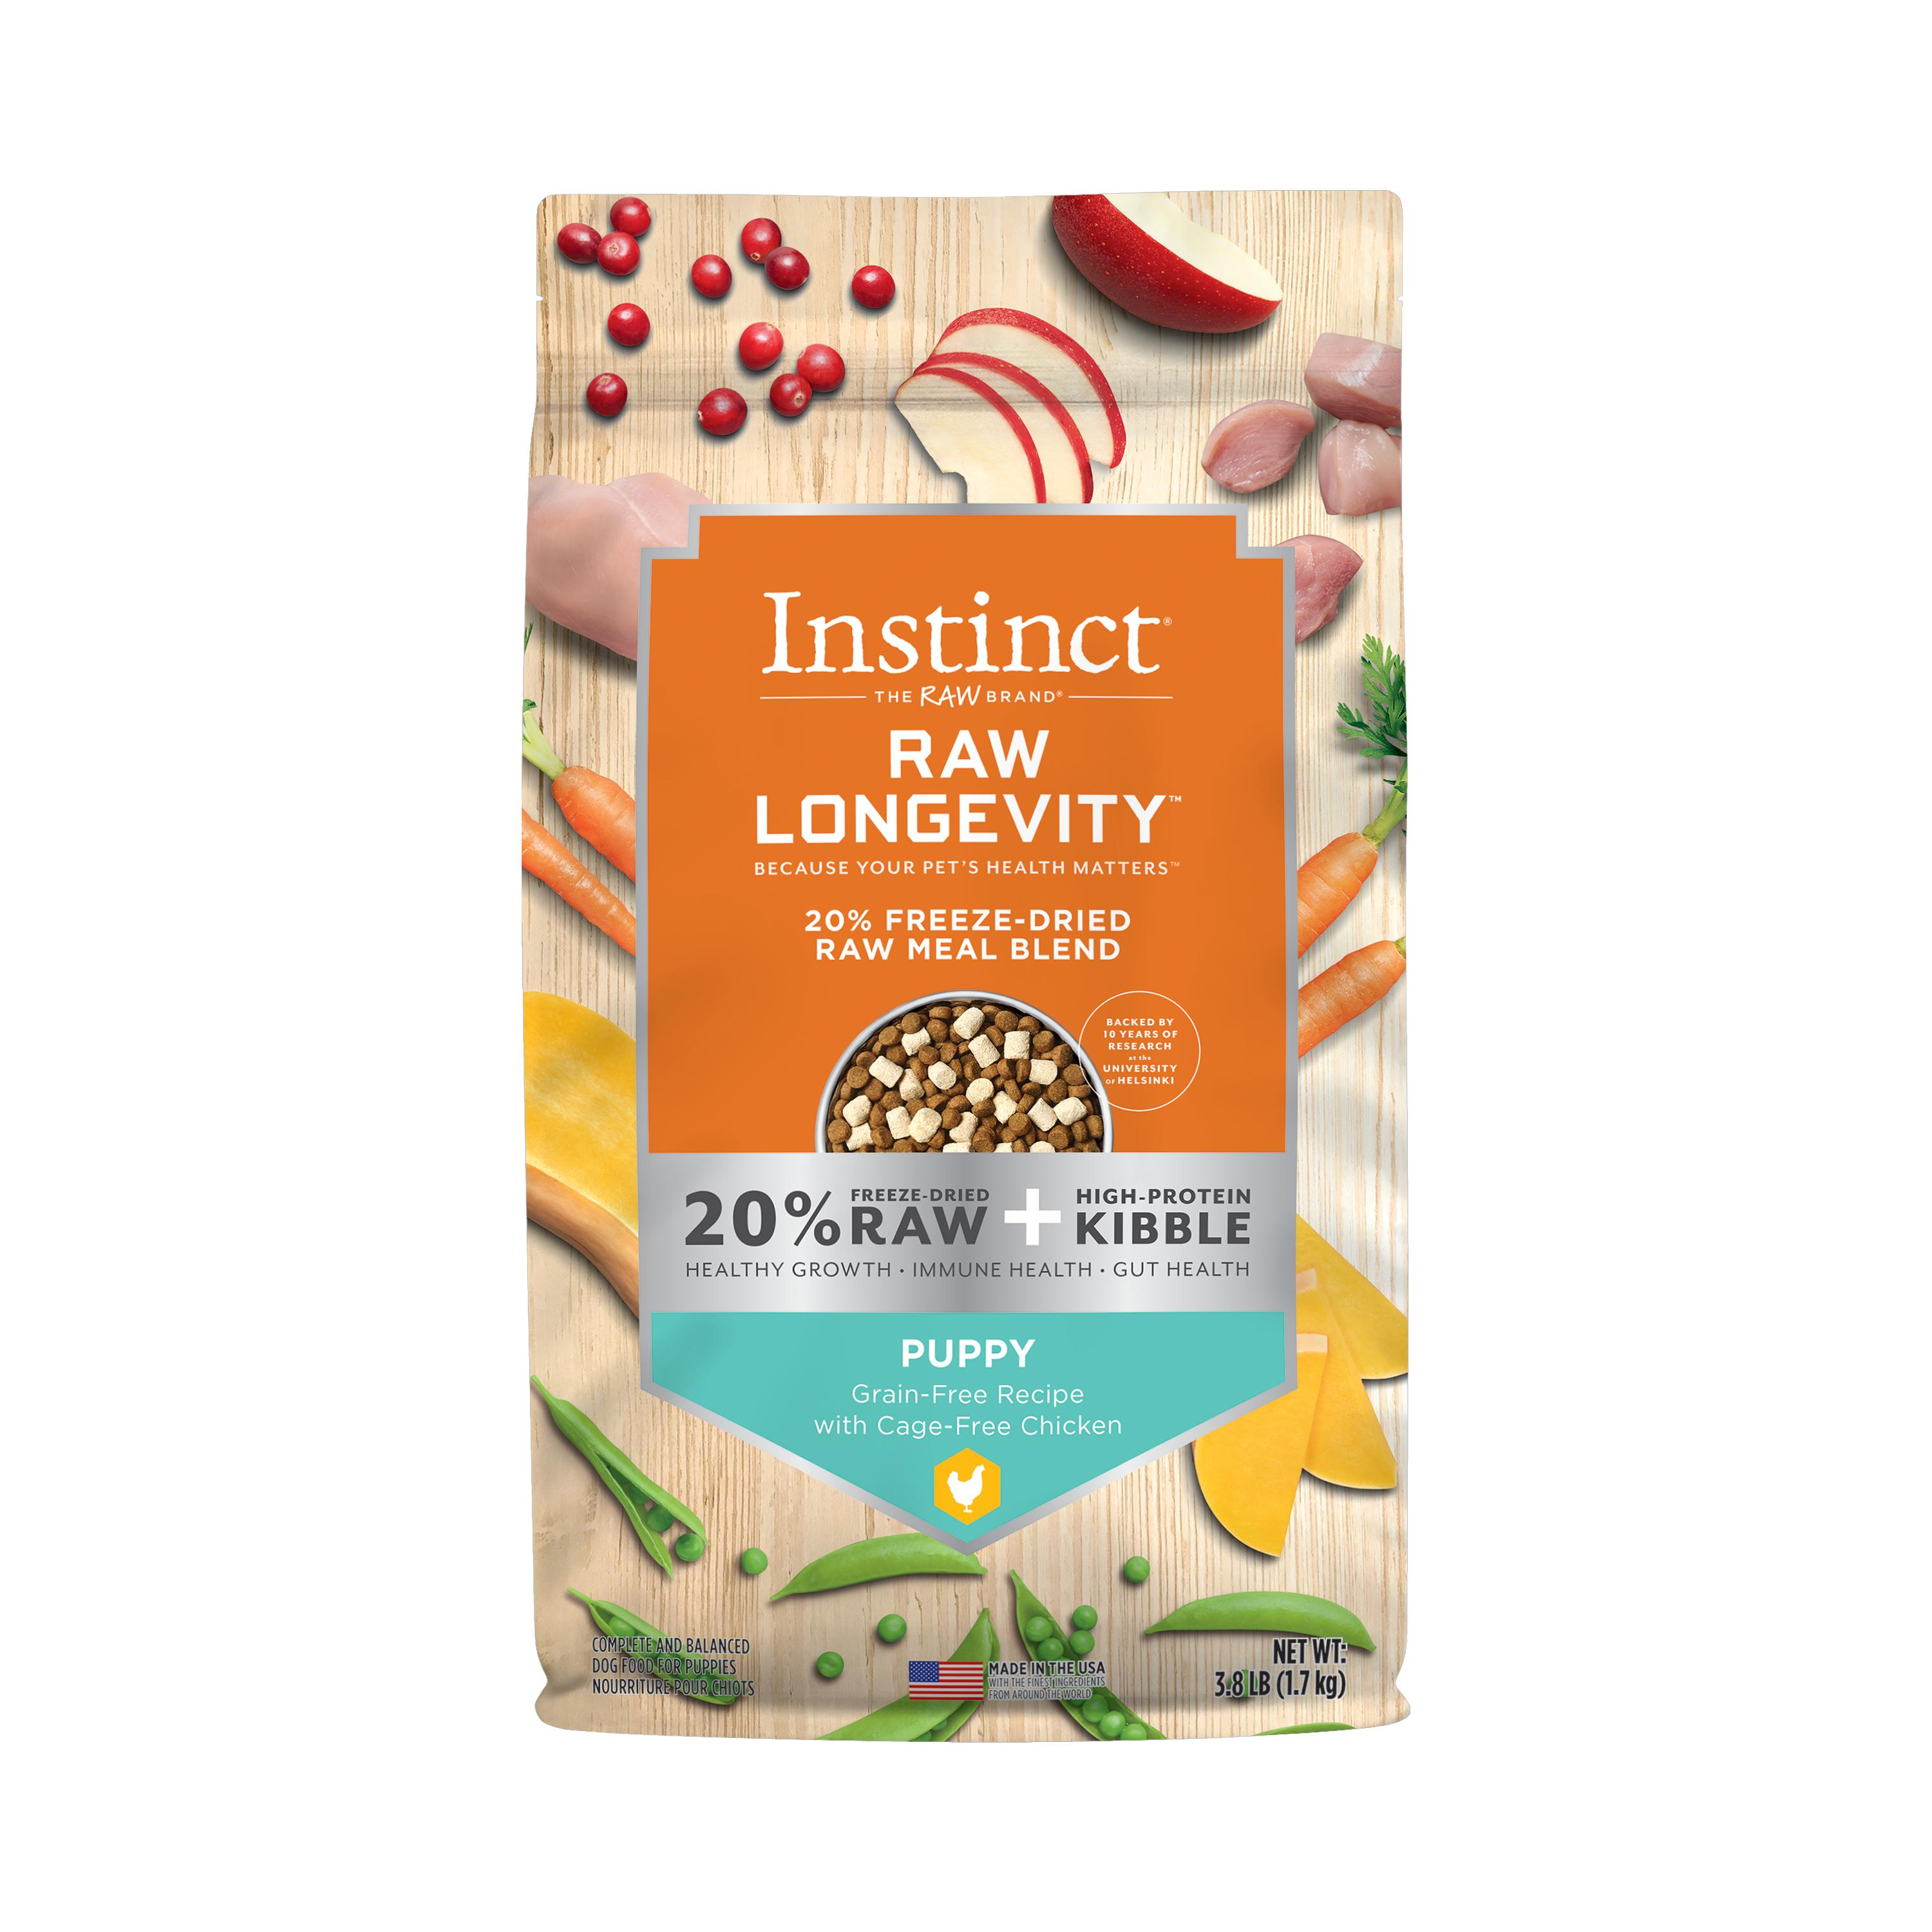 Instinct by Nature's Variety Raw Longevity Grain-Free Recipe with Cage-Free Chicken Puppy 20% Freeze-Dried Dog Food, 3.8-lb